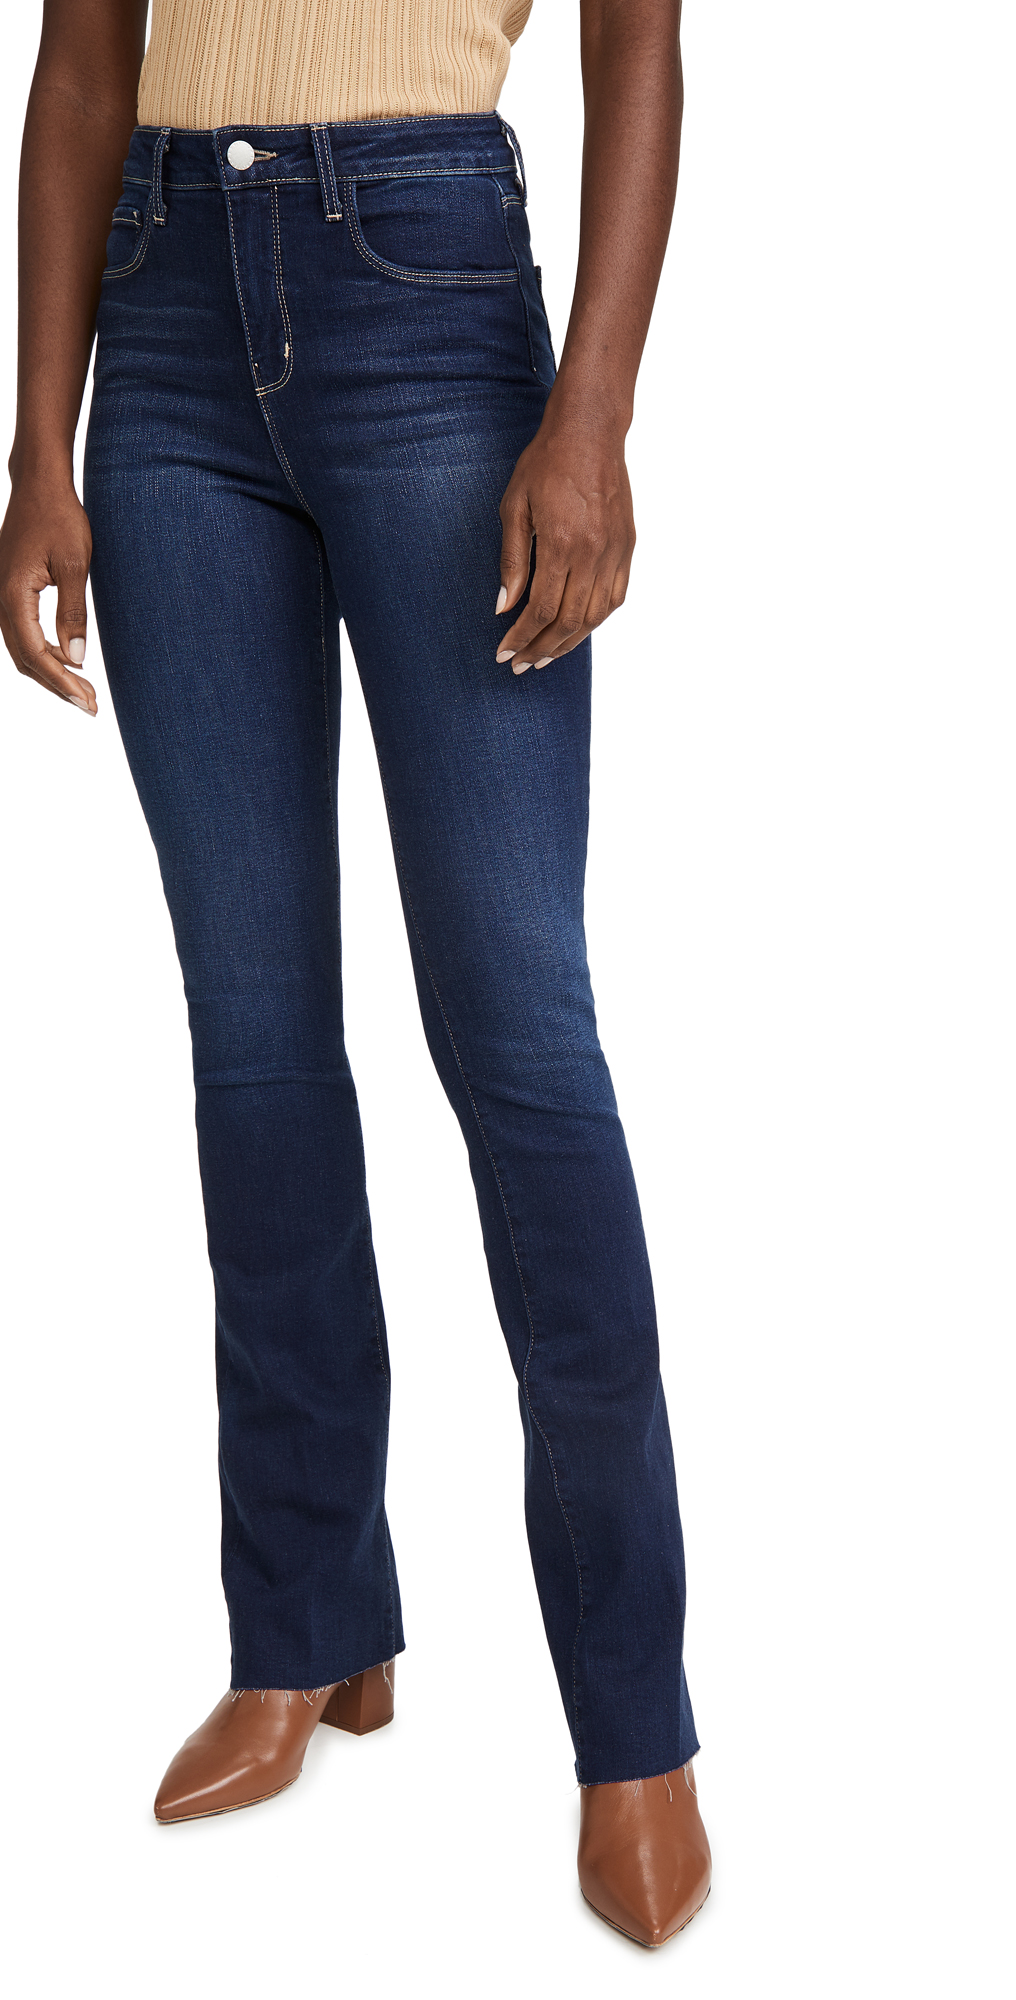 L'AGENCE Ruth High Rise Straight Jeans